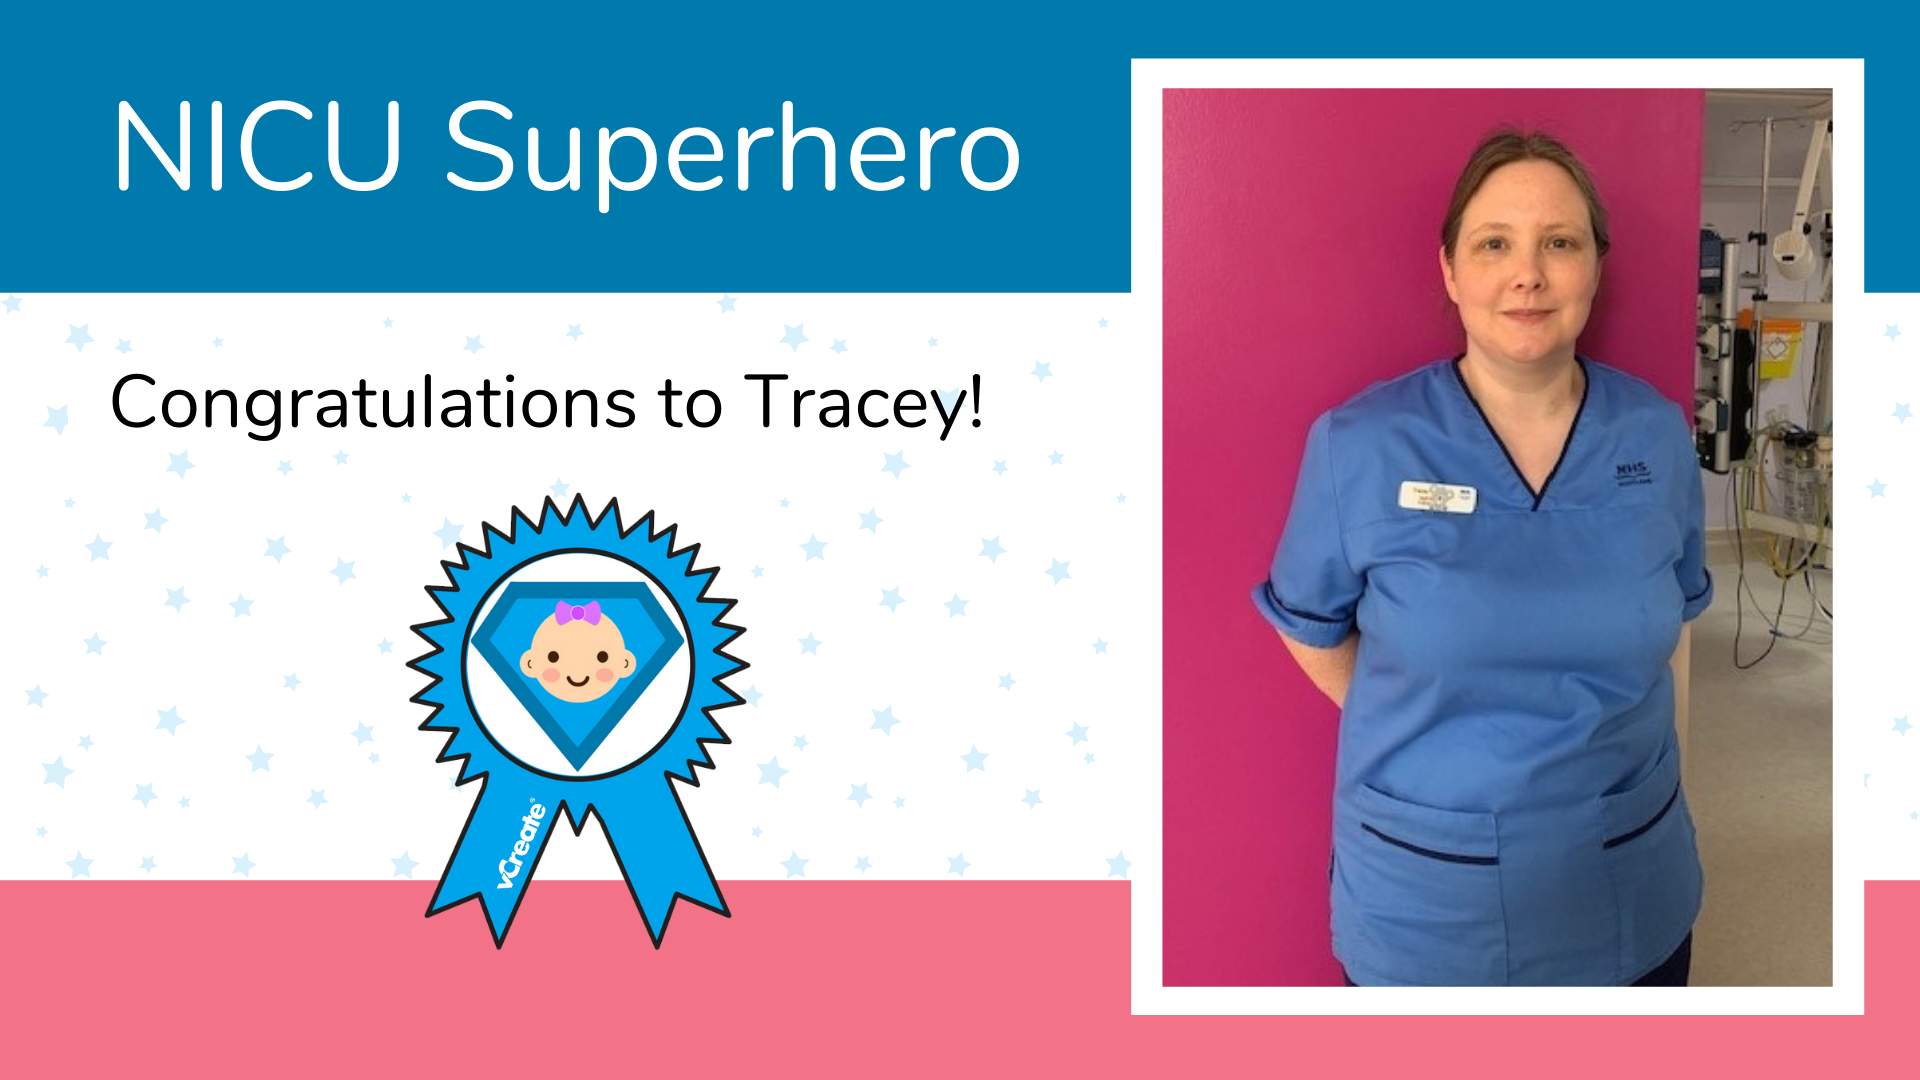 Tracey, from the Royal Alexandra Hospital in Paisley, is Samantha's NICU Superhero!